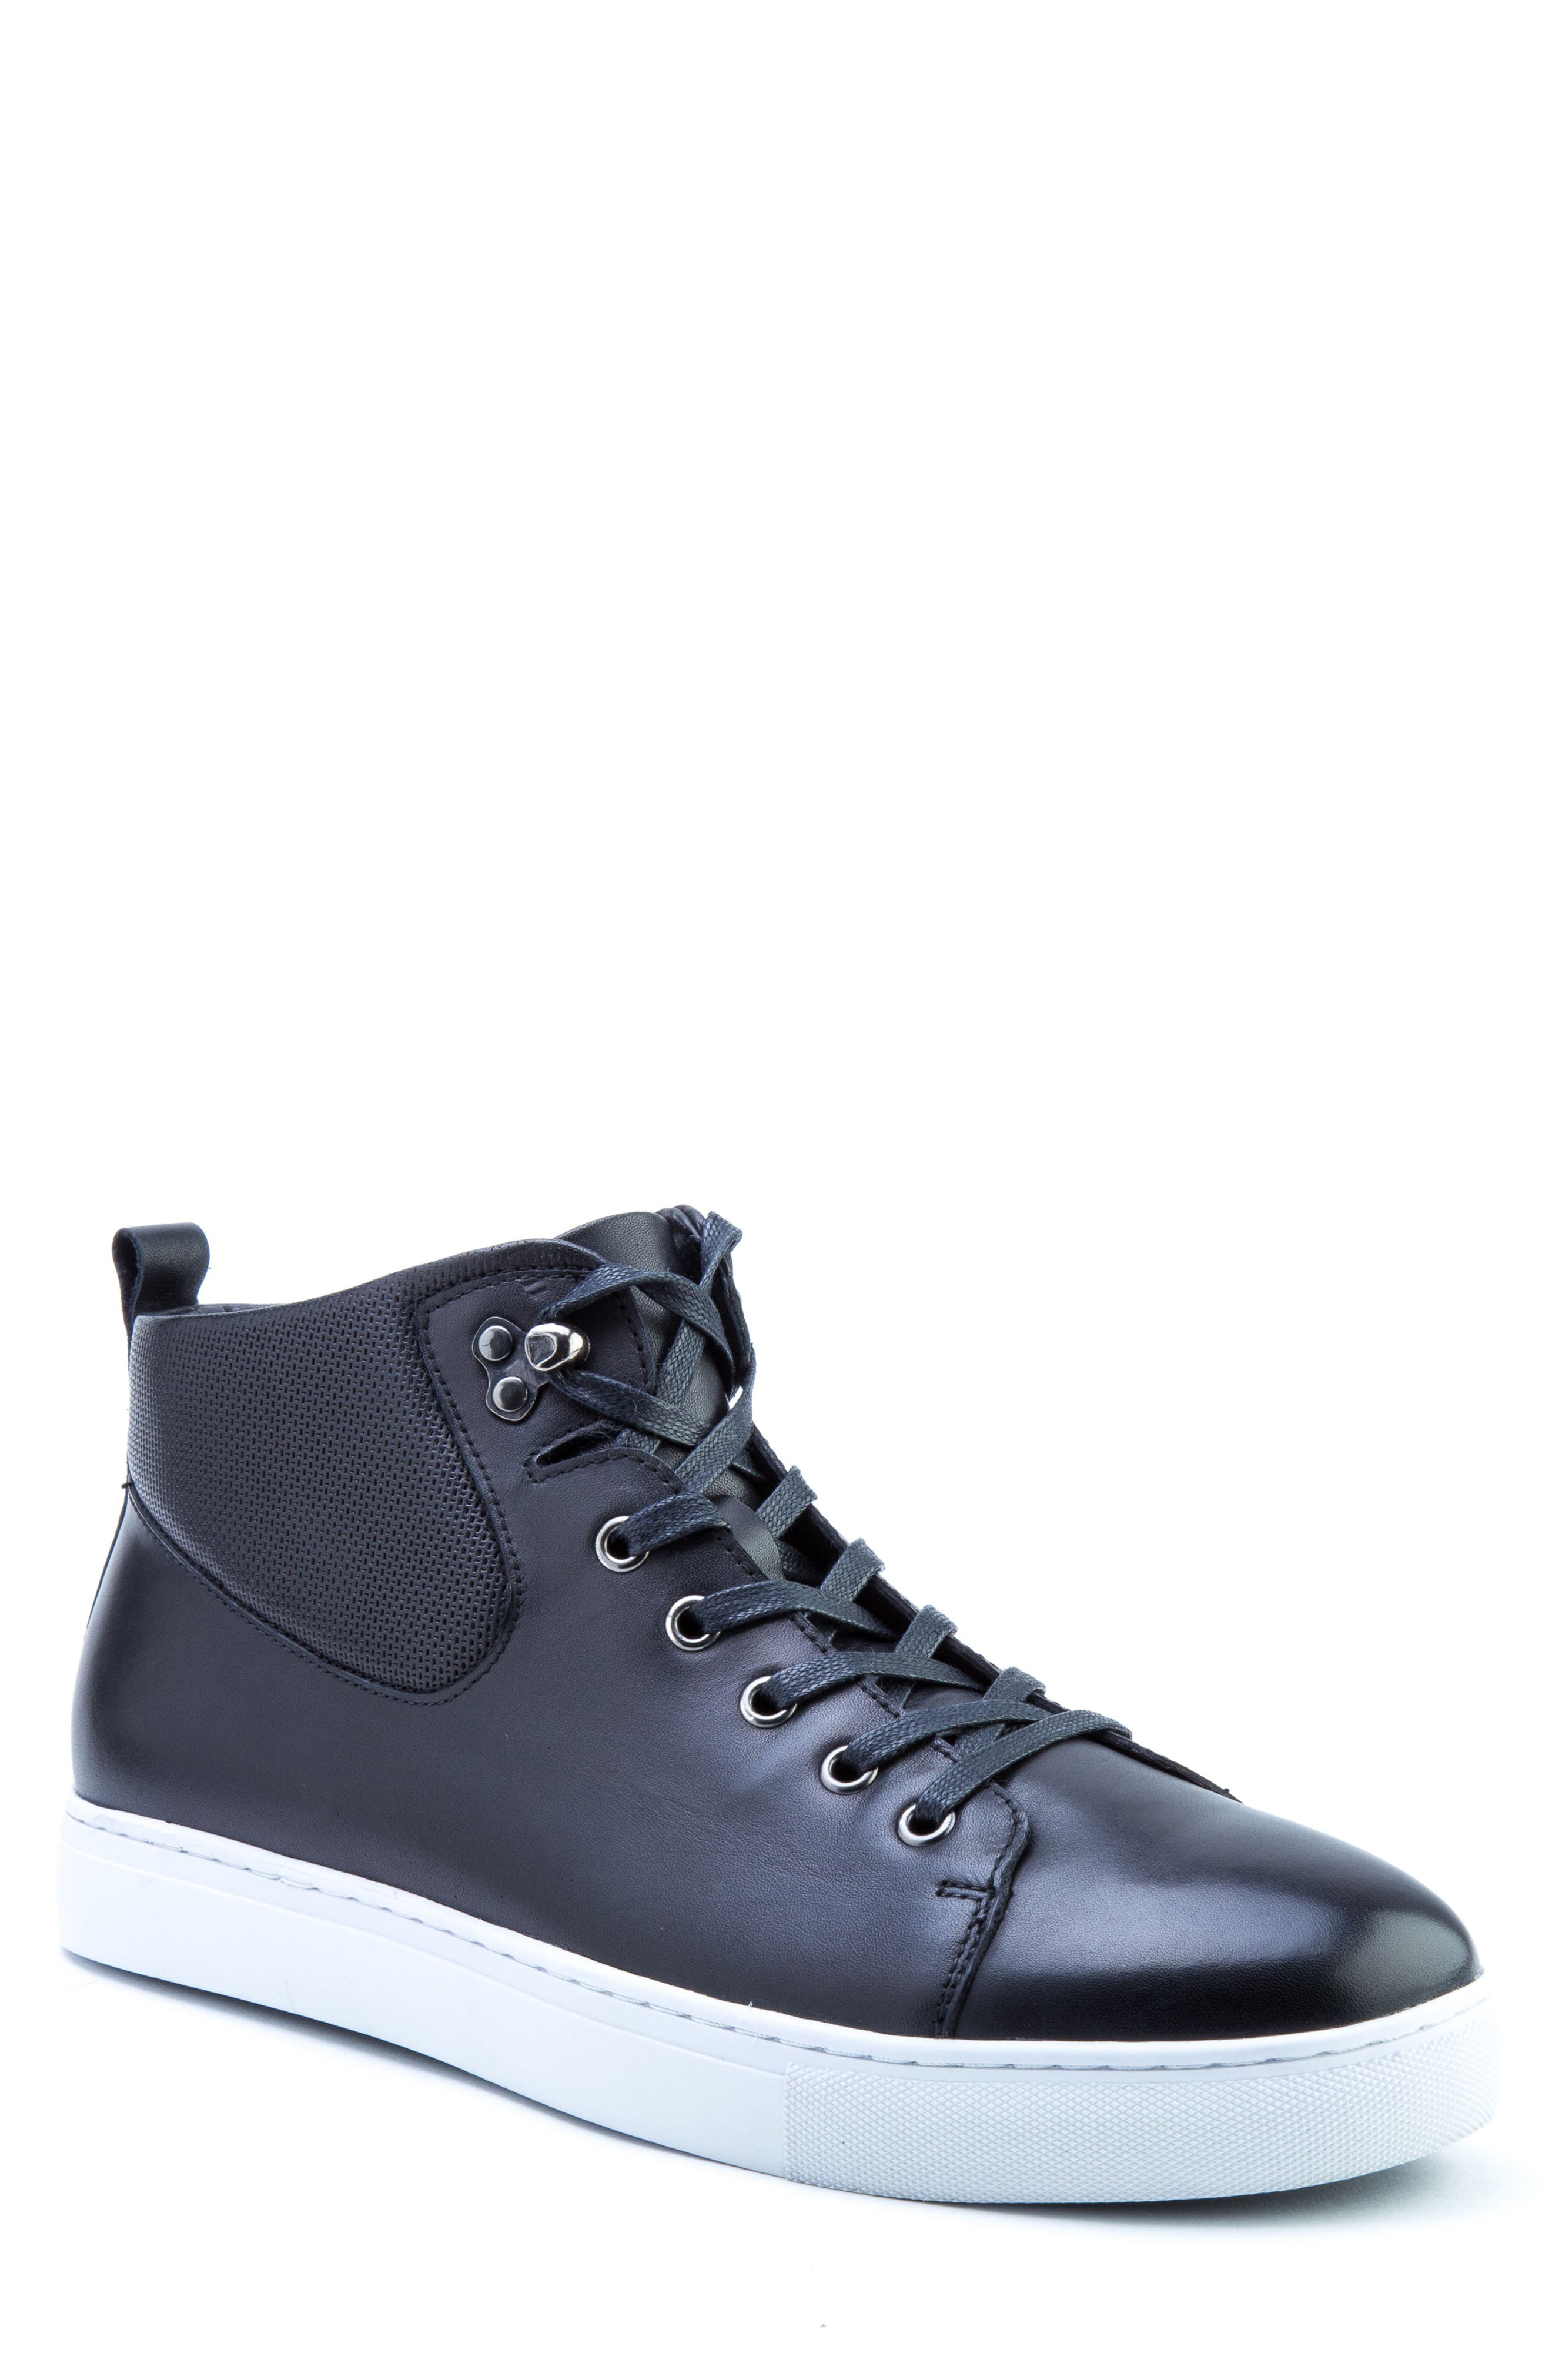 Sanders Sneaker,                             Main thumbnail 1, color,                             BLACK LEATHER